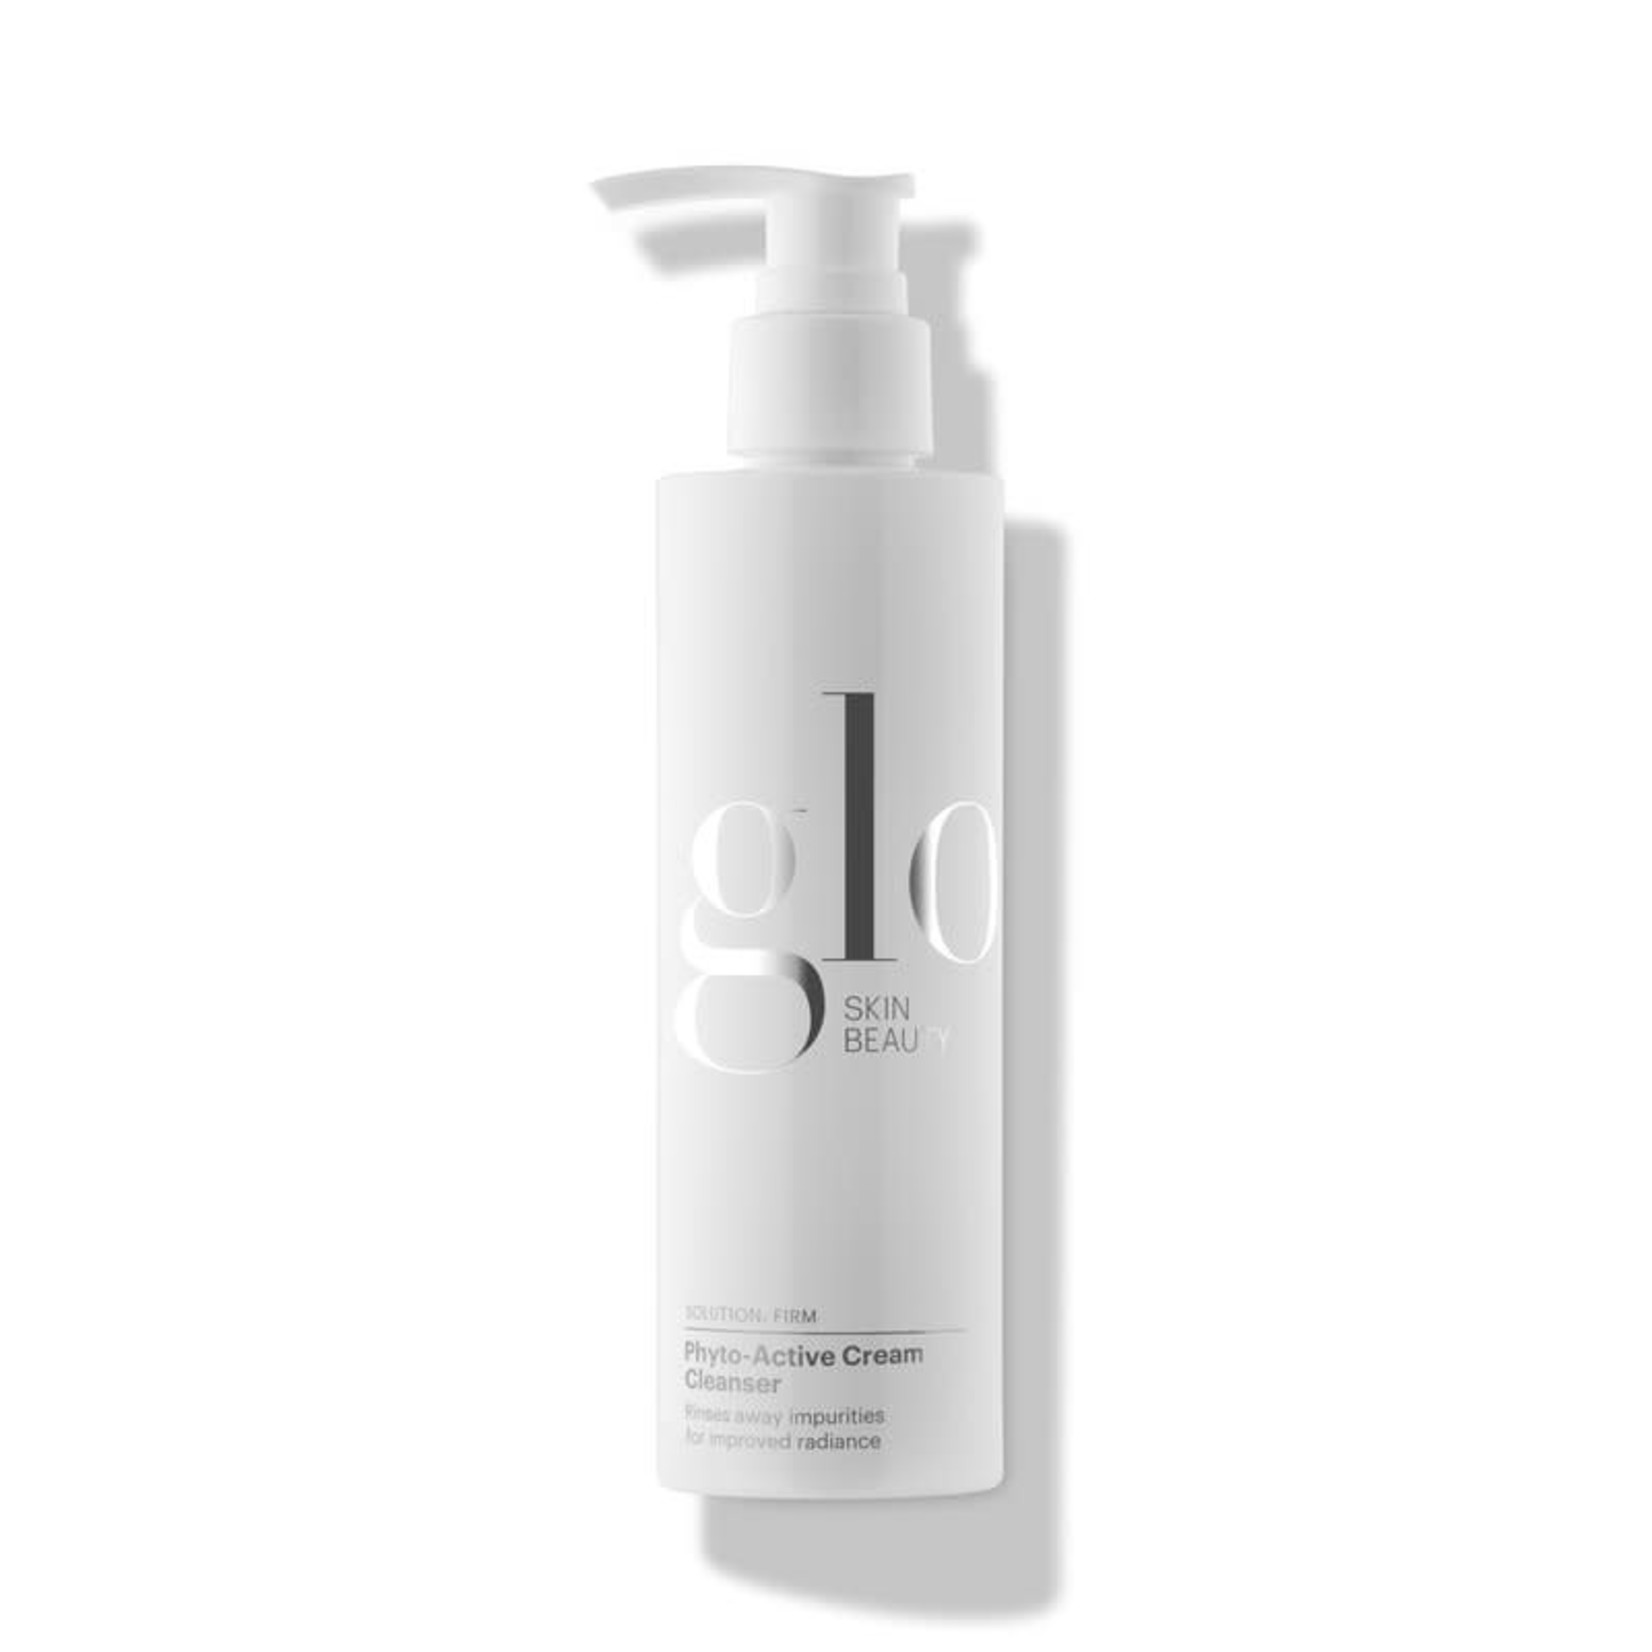 Glo Skin Beauty Phyto-Active Cream Cleanser